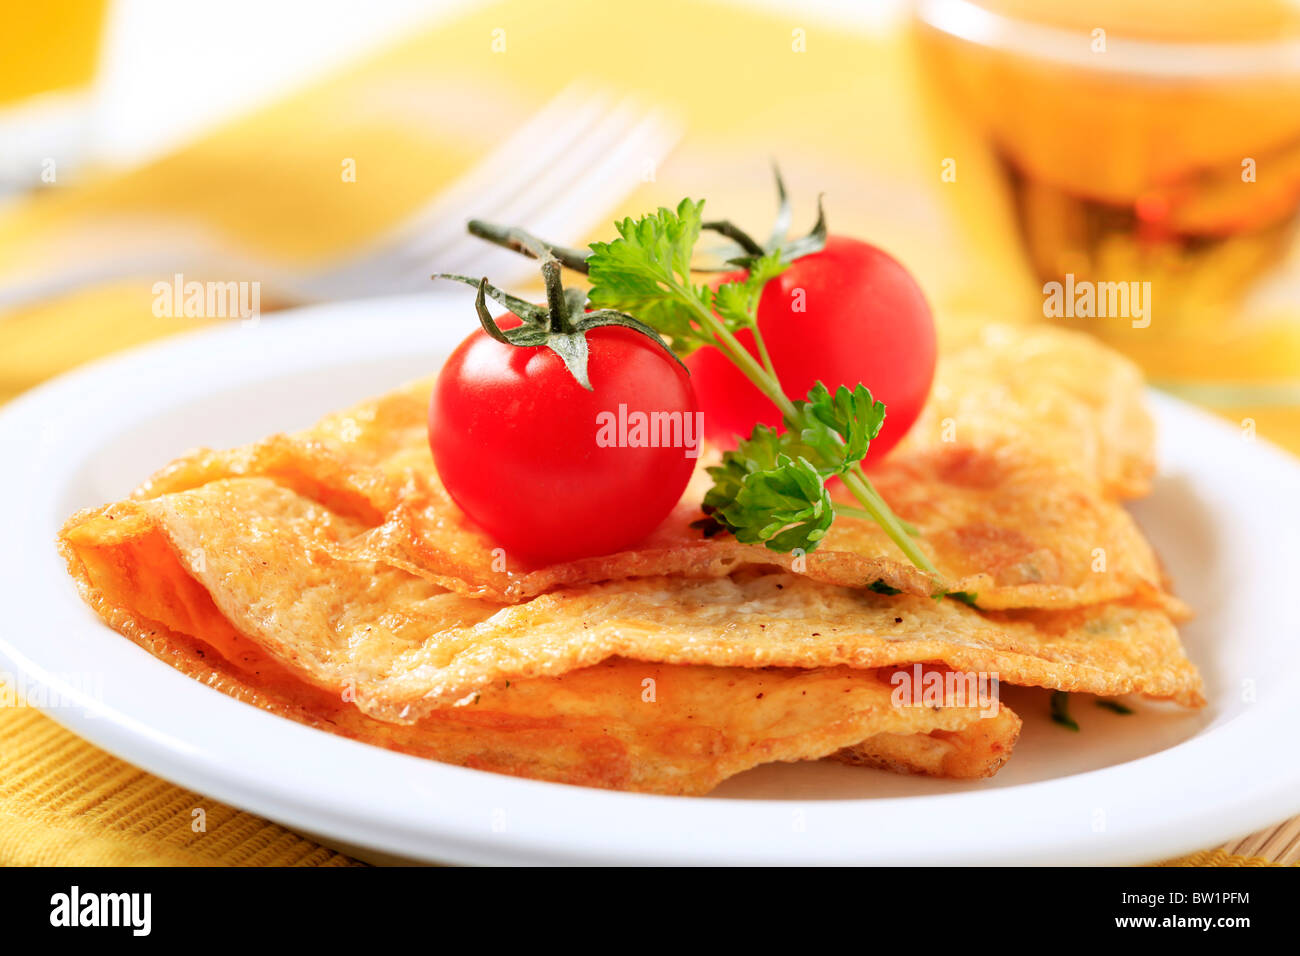 Omelets and two fresh tomatoes - Stock Image